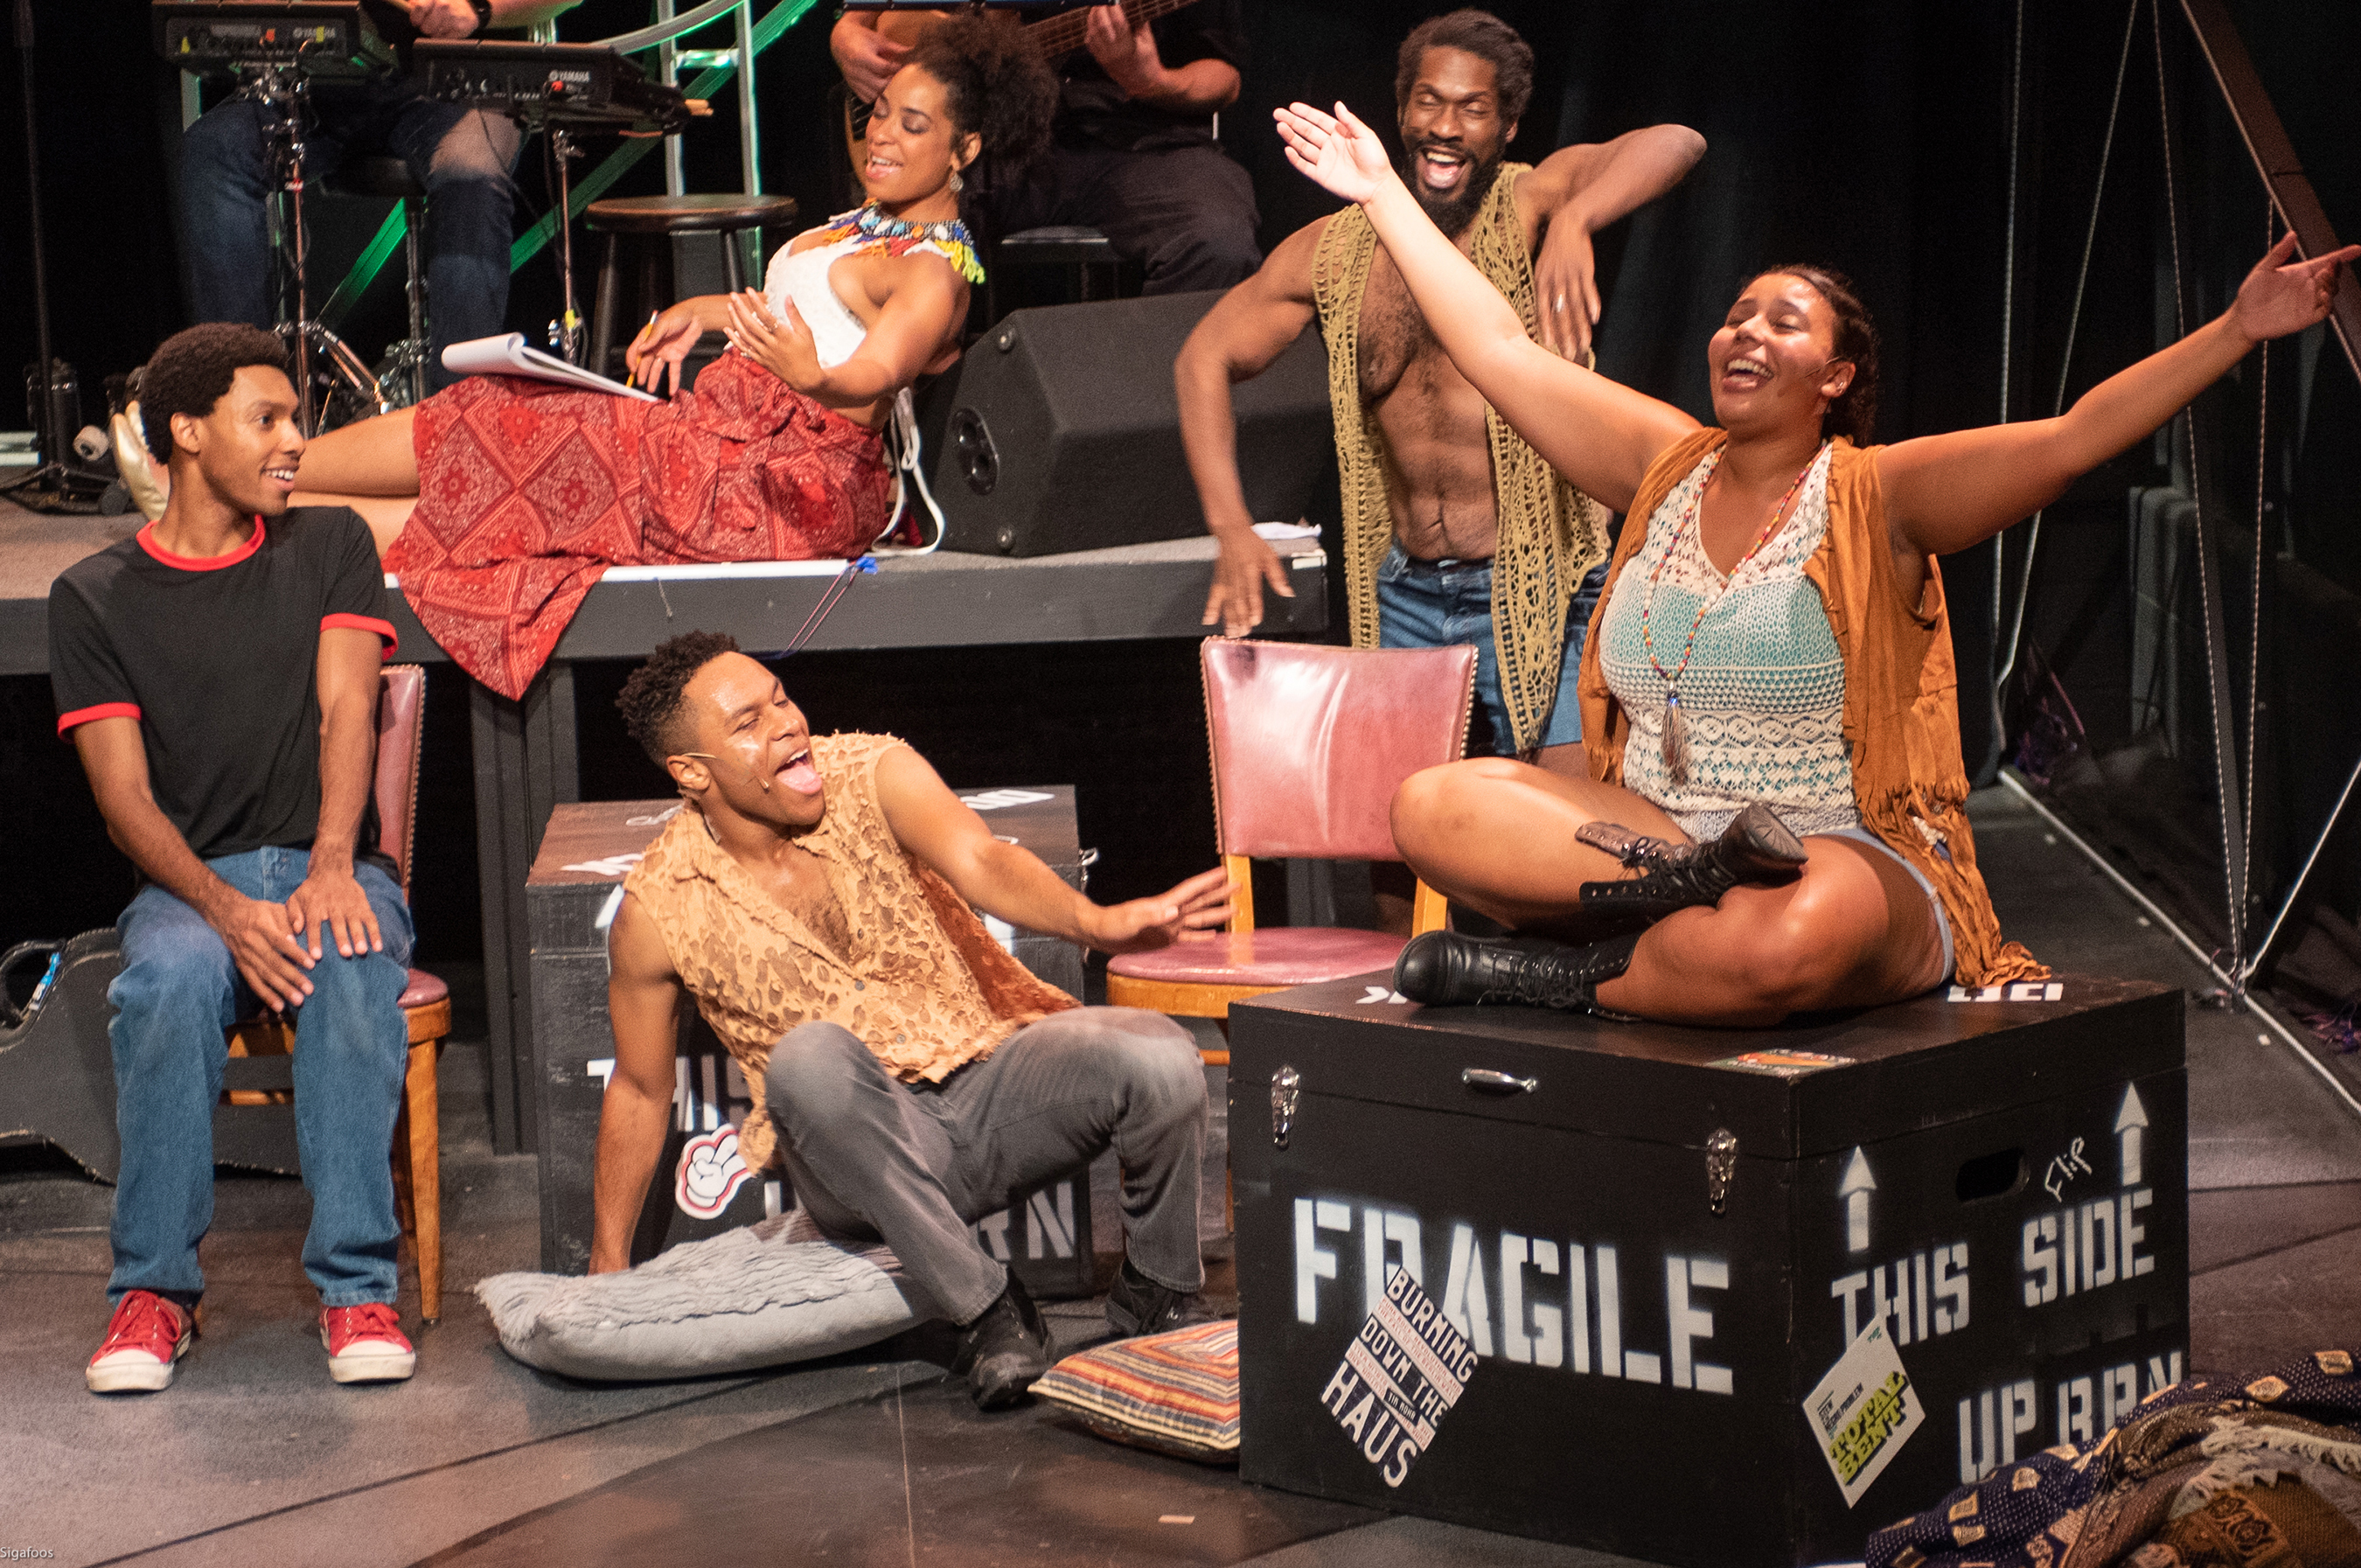 Passing Strange - Keaton Hillman, Jamar Jones, Katrinah Carol Lewis, Keydron Dunn, Dylan Jones, photo by Bill Sigafoos